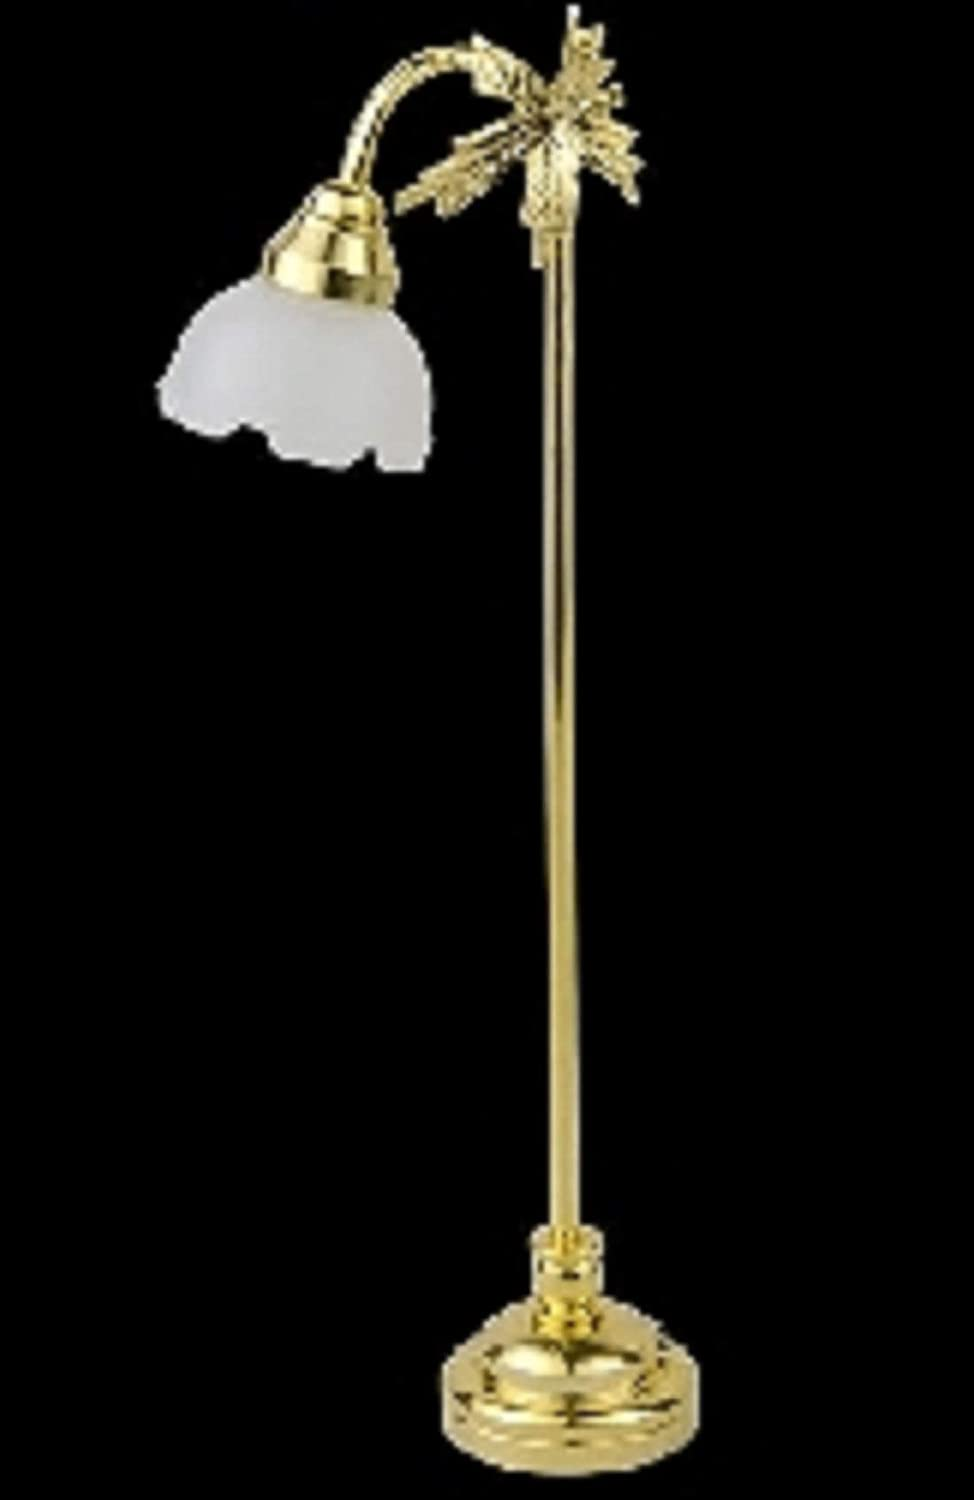 Melody Jane Dollhouse Brass Standard Lamp Fluted Shade Miniature 1:12 LED Battery Light